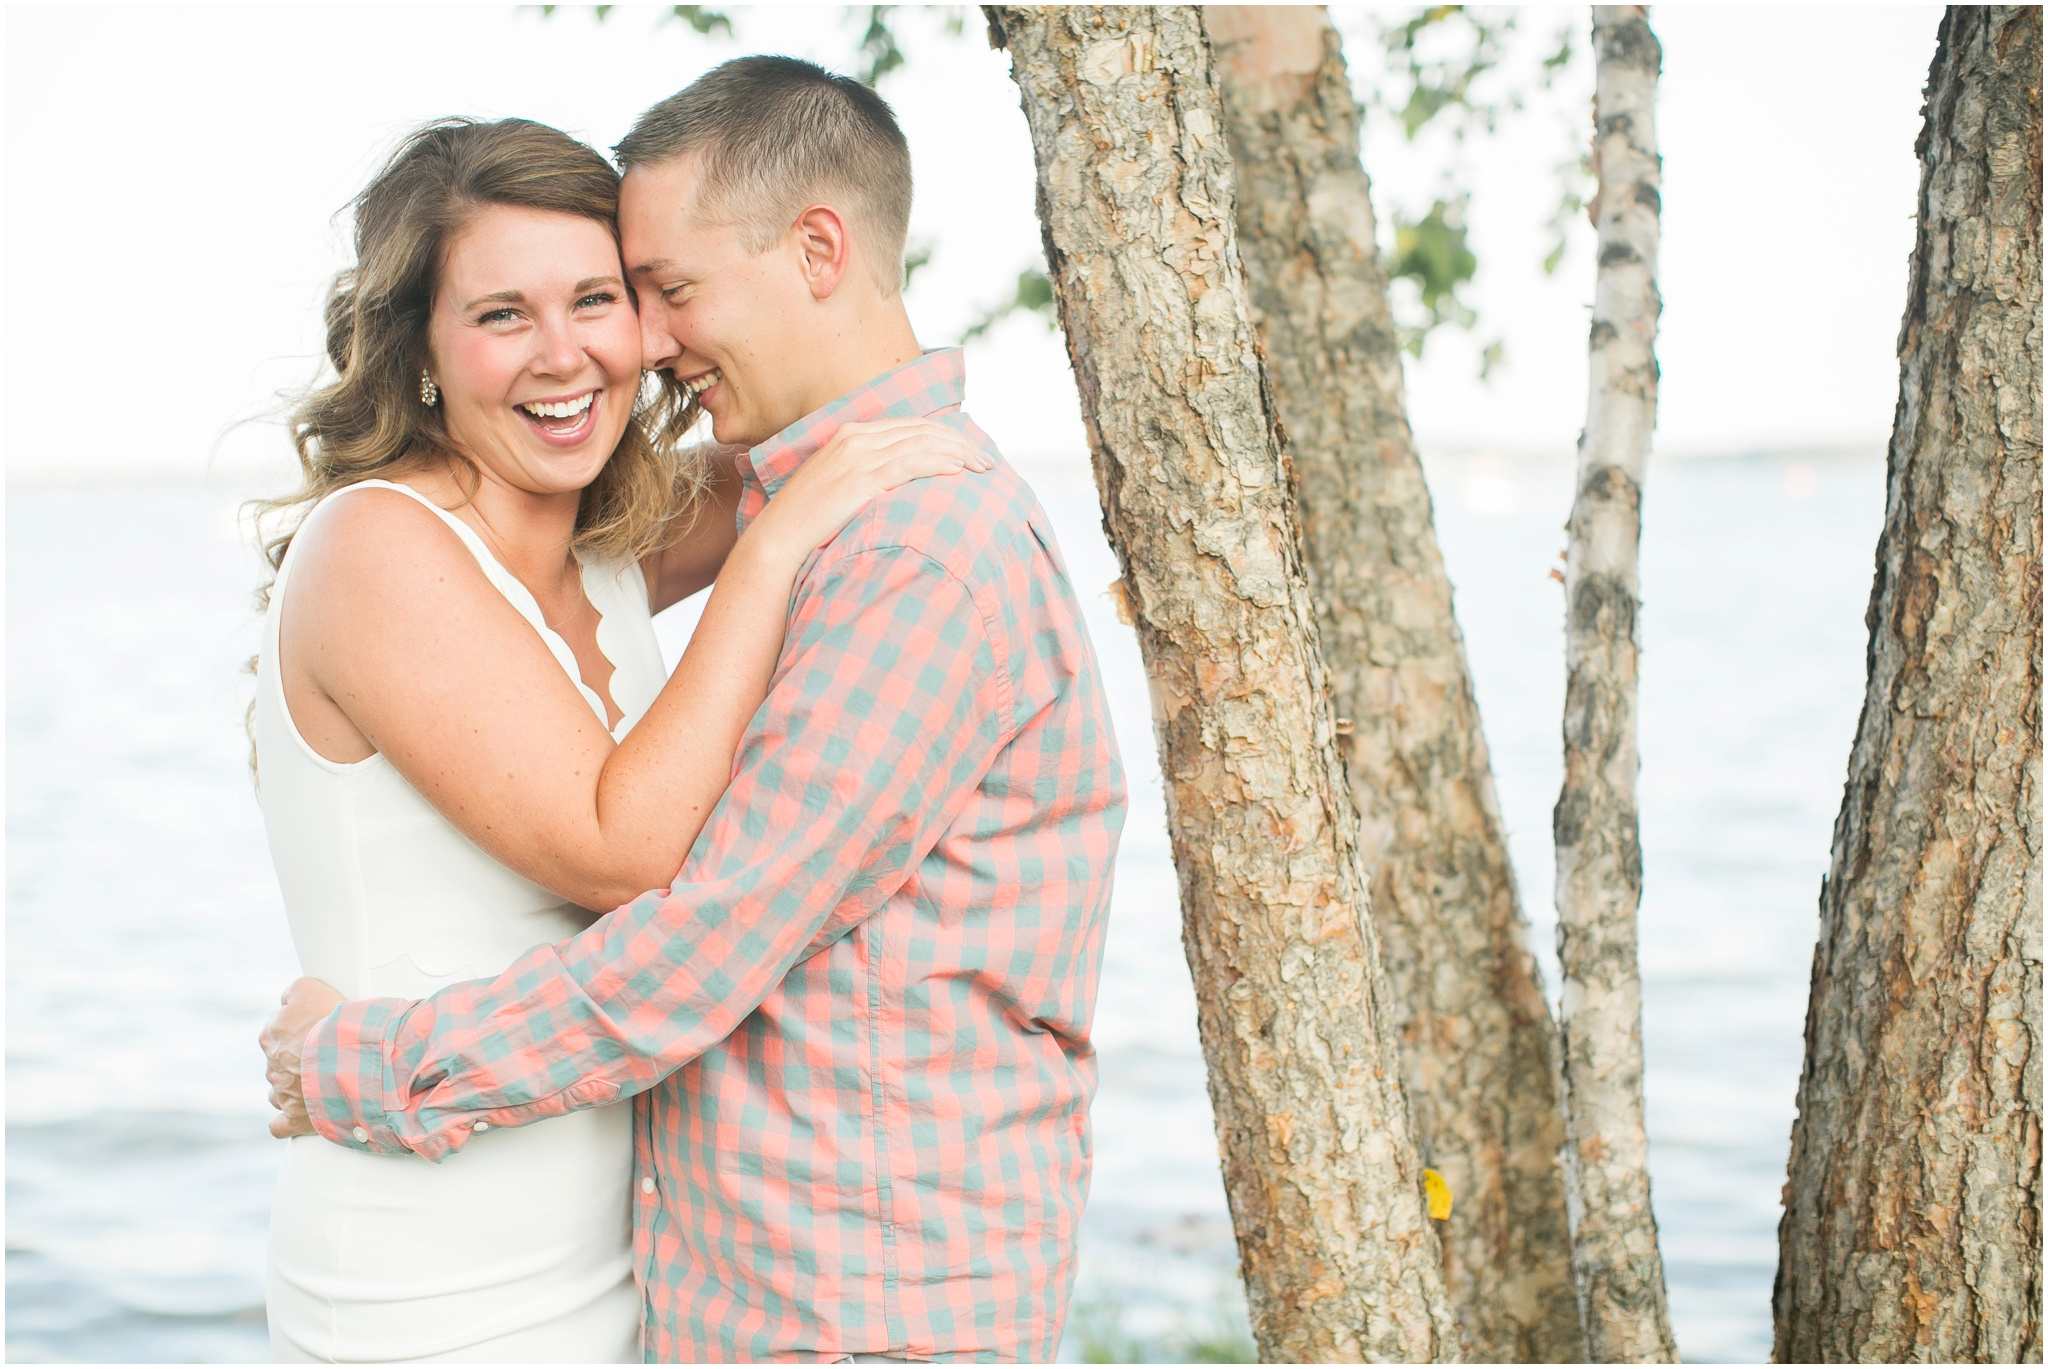 Downtown_Madison_Wisconsin_Engagement_Session_Waterfront_Monona_Terrace_0462.jpg